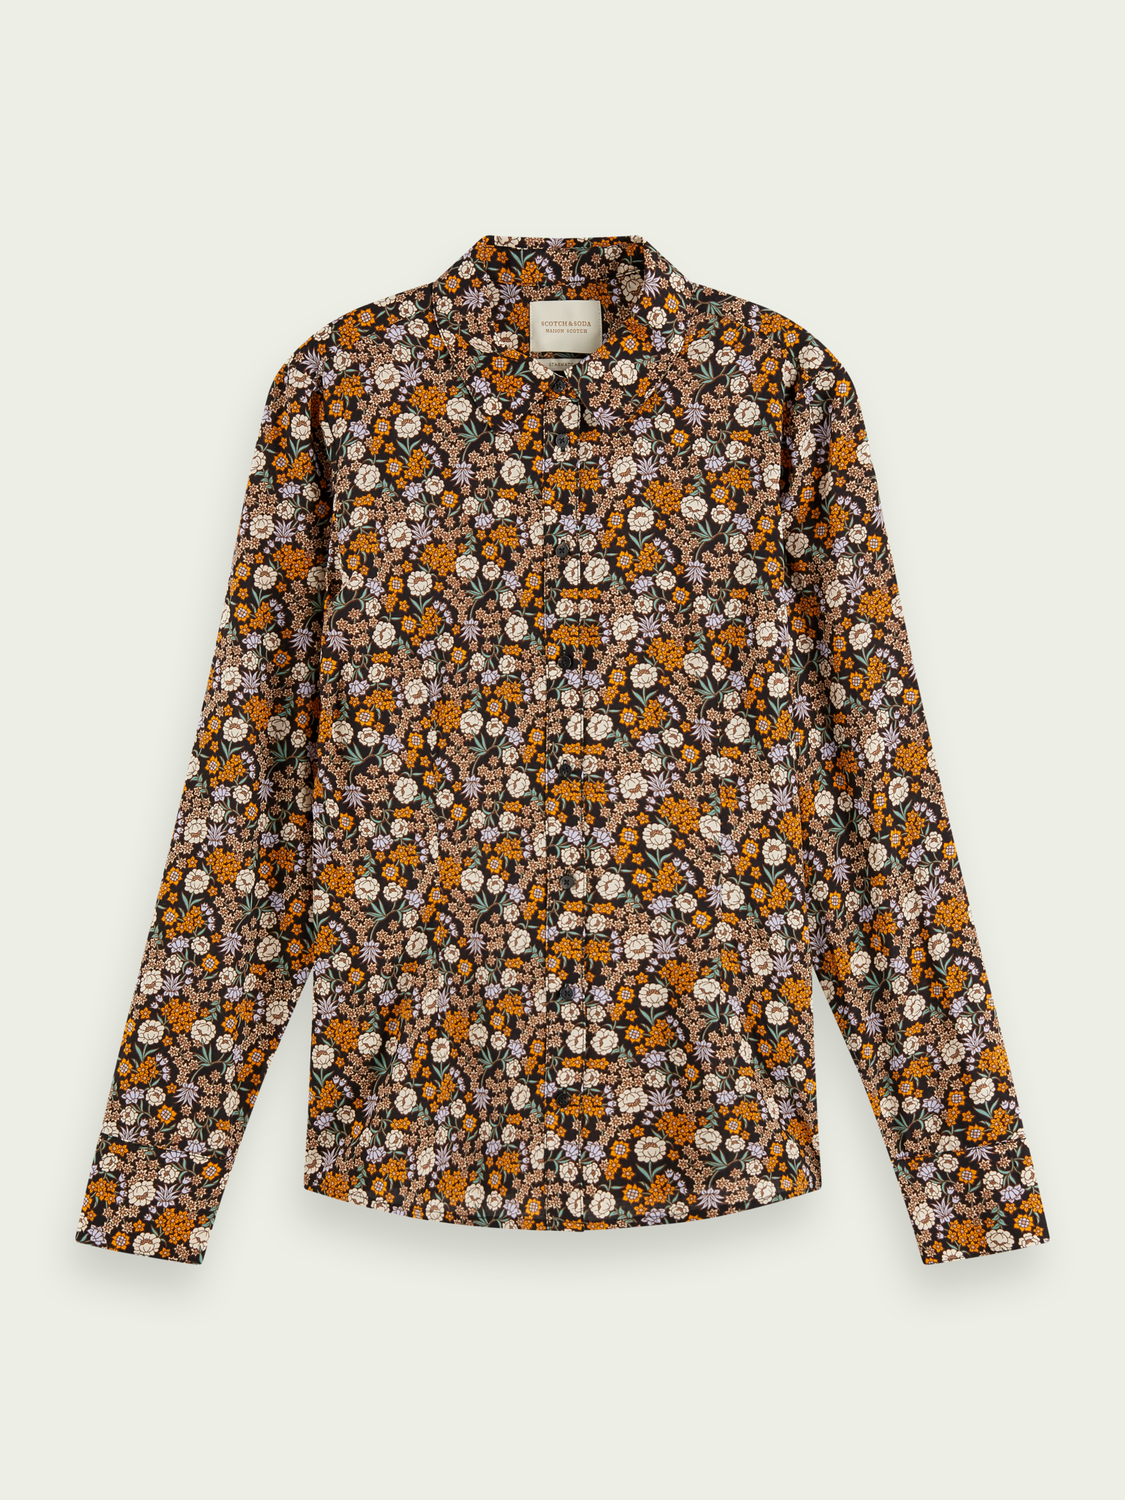 Dames Slim fit blouse van een katoenmix